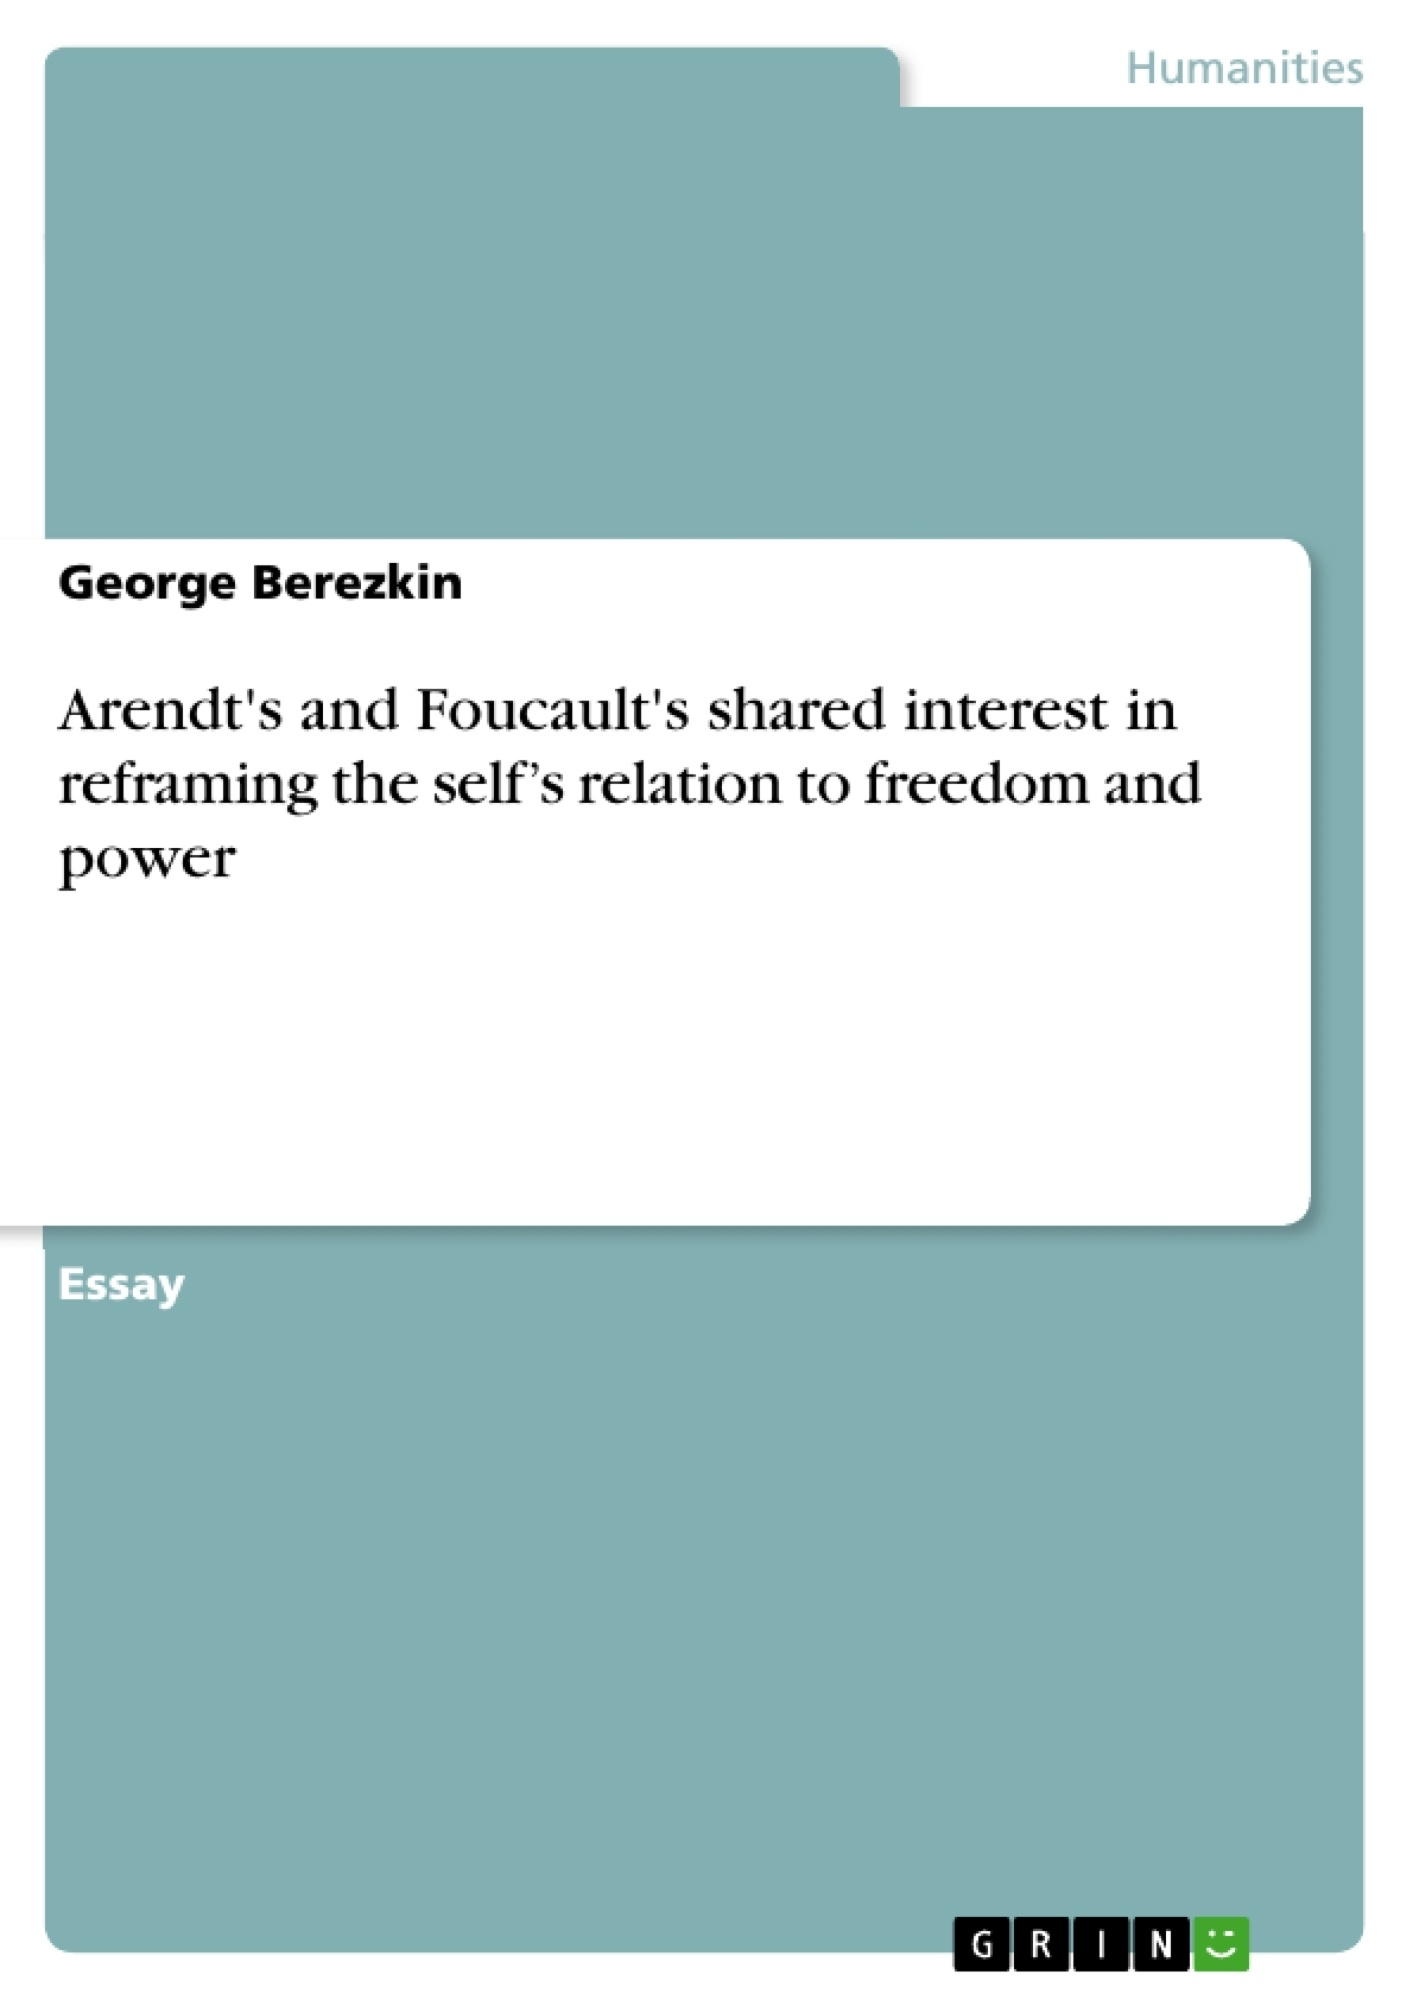 Title: Arendt's and Foucault's shared interest in reframing the self's relation to freedom and power